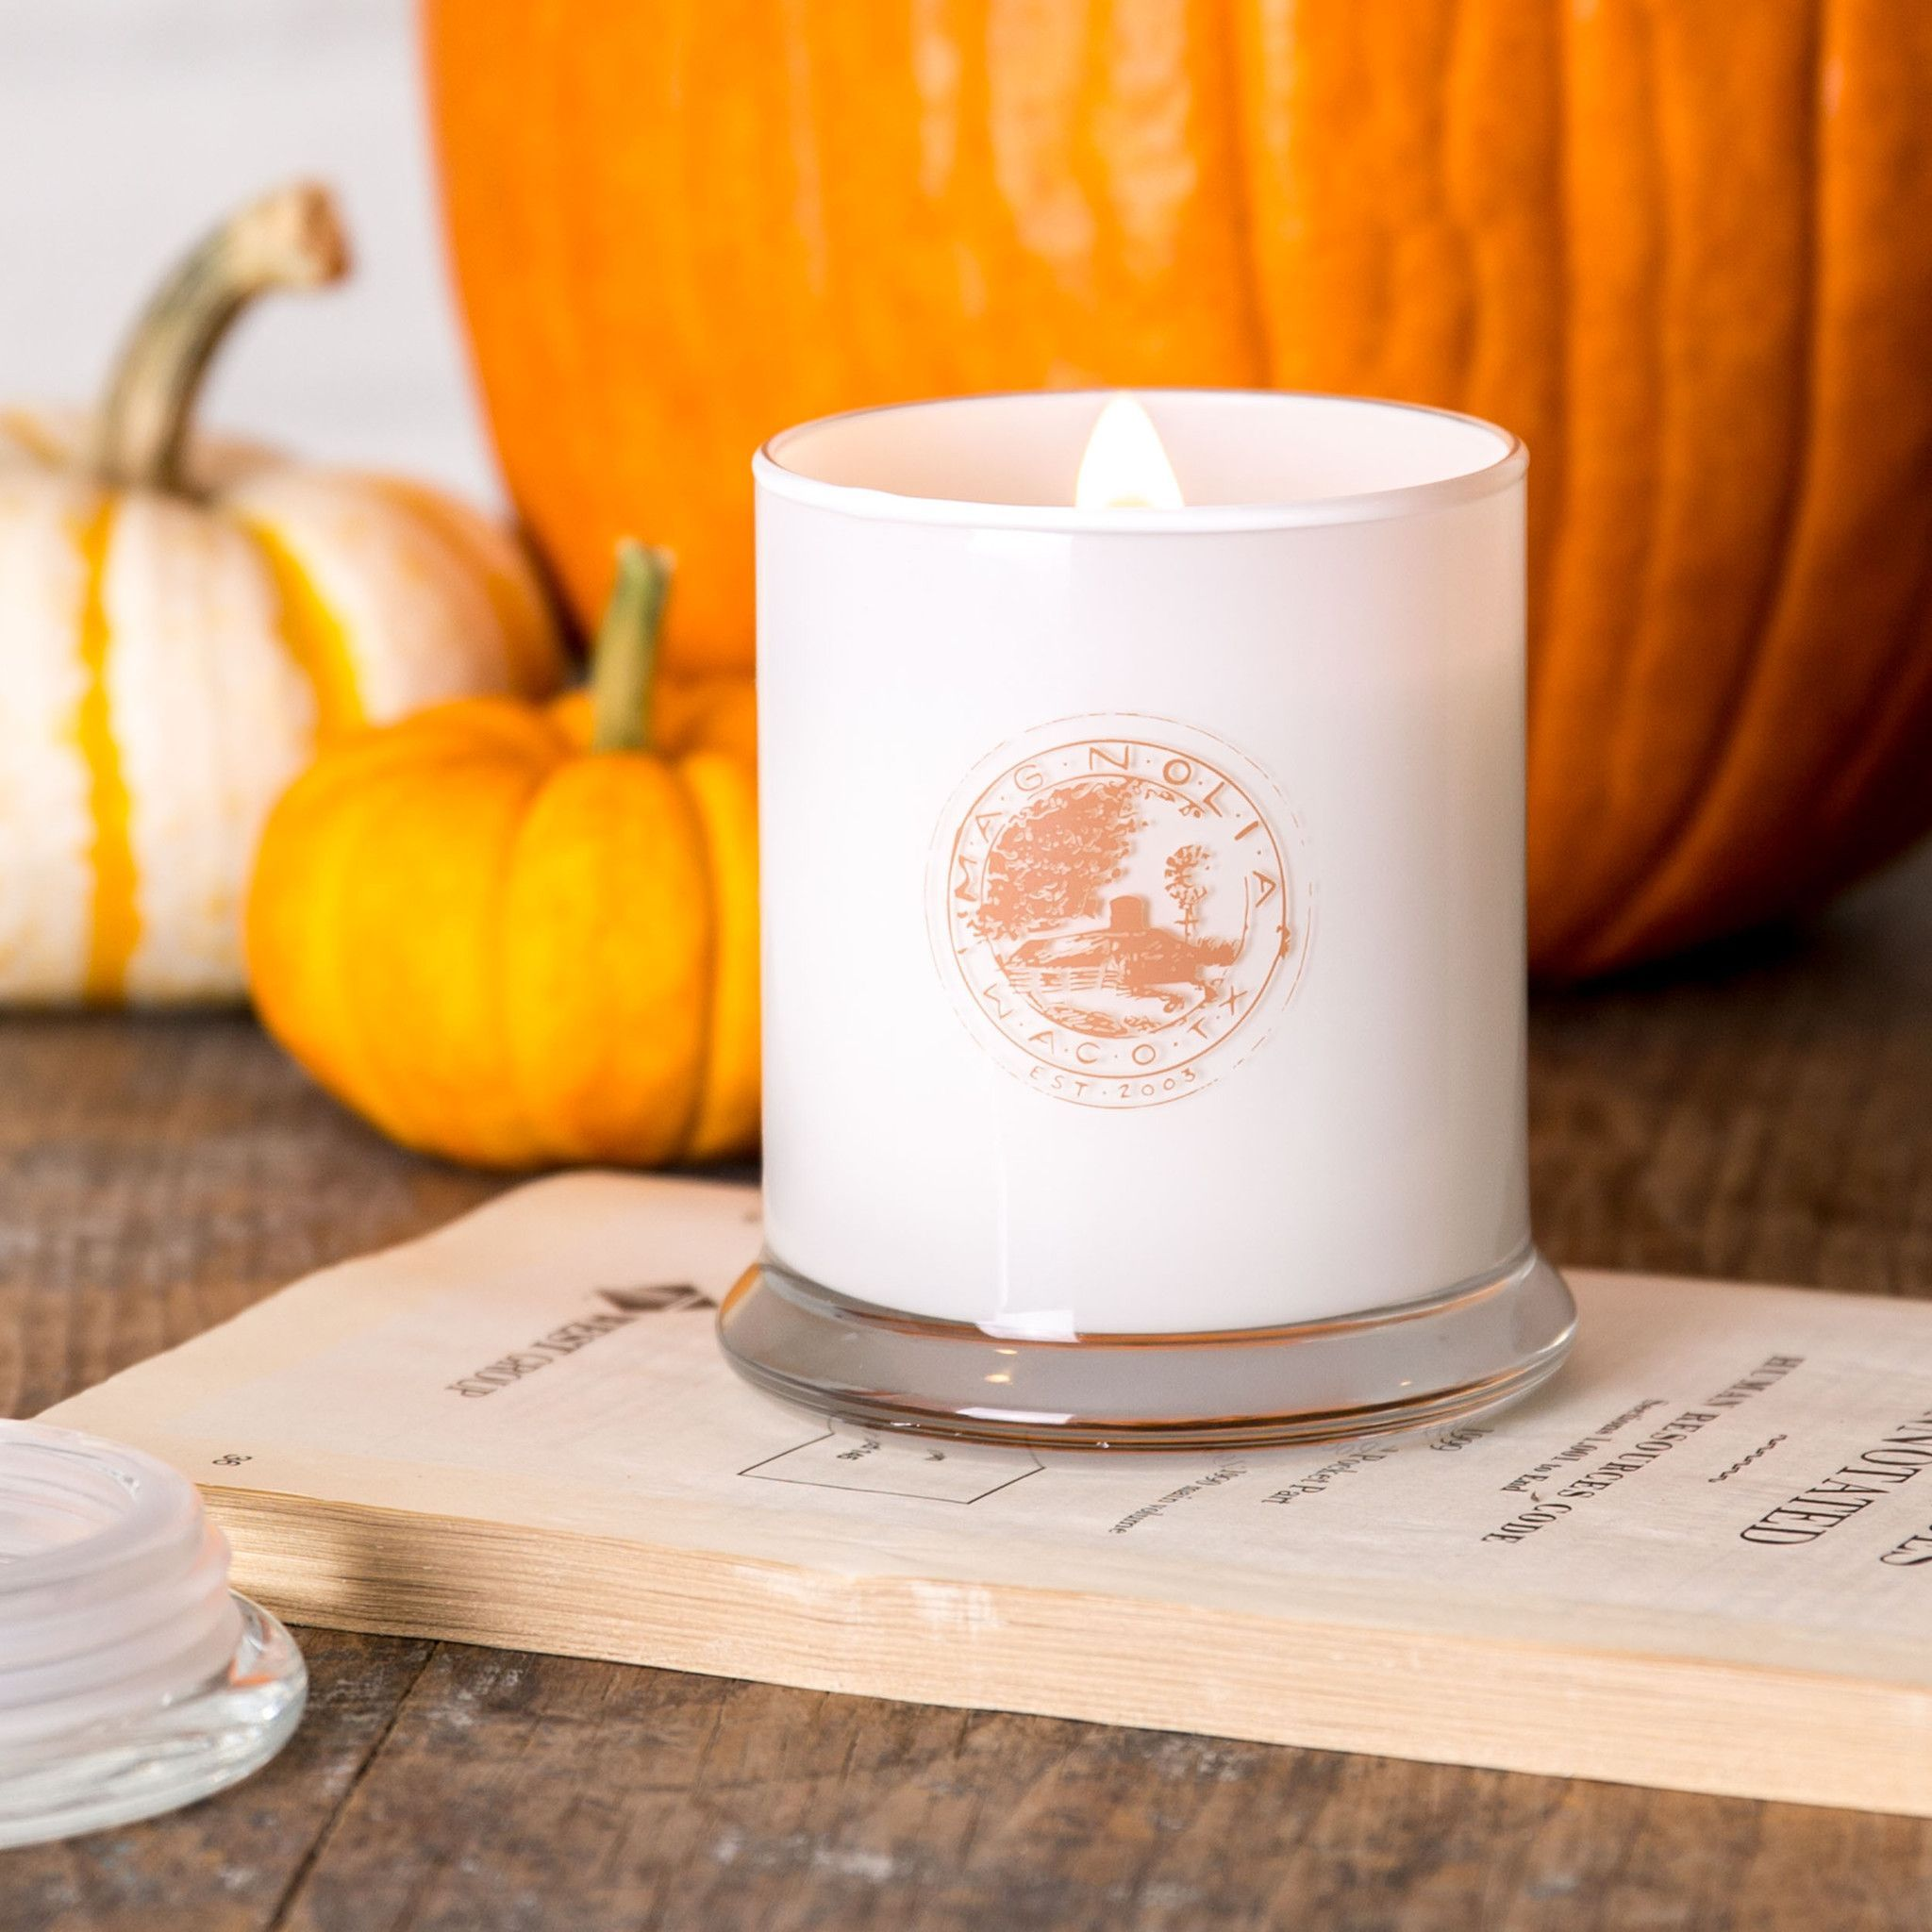 Magnolia Fall Candle Magnolia Market Chip Joanna Gaines Fall